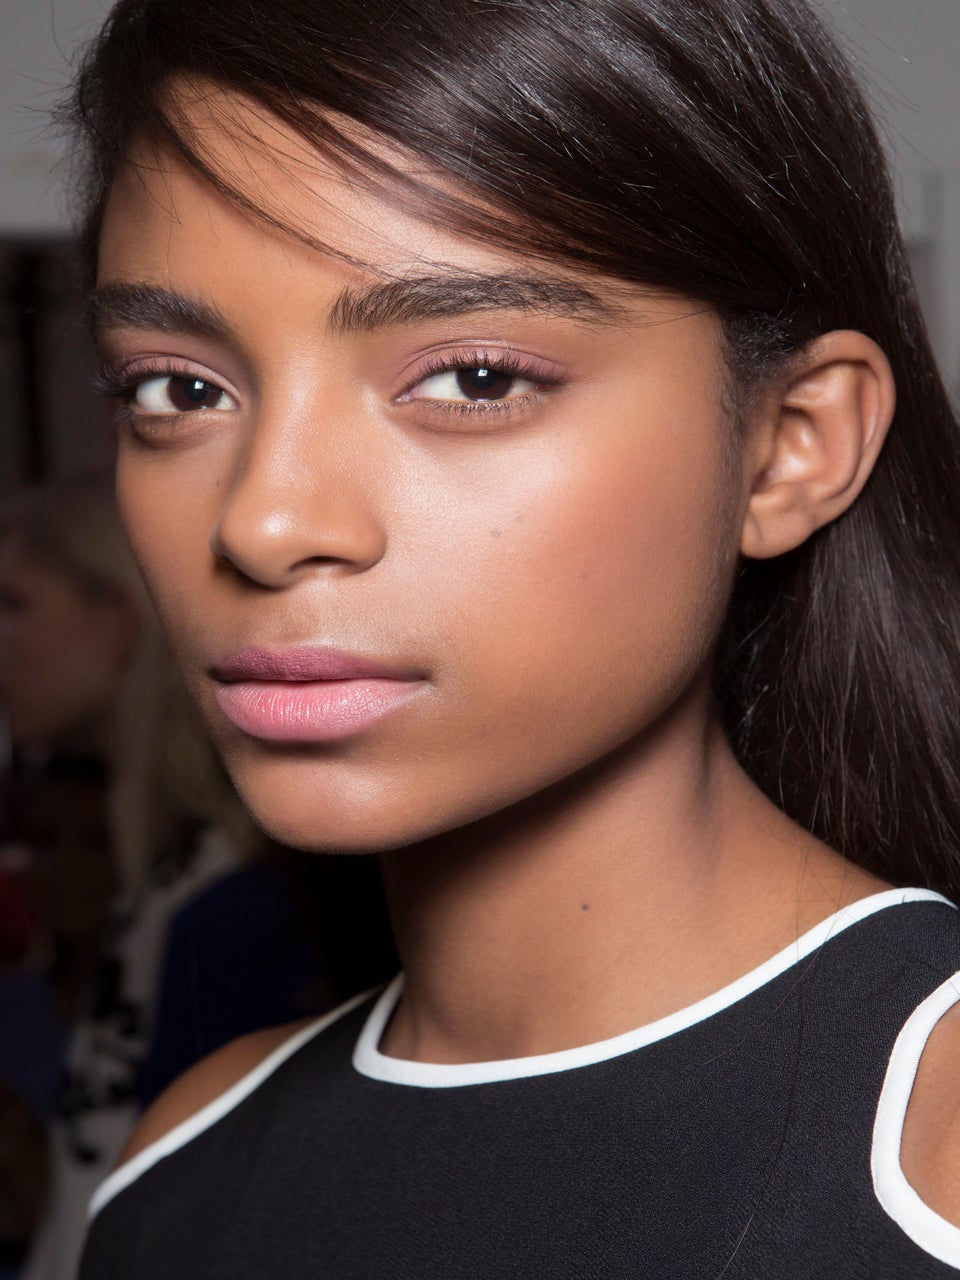 The Easy-to-Use Highlighter That Looks Good on Every Skin Tone